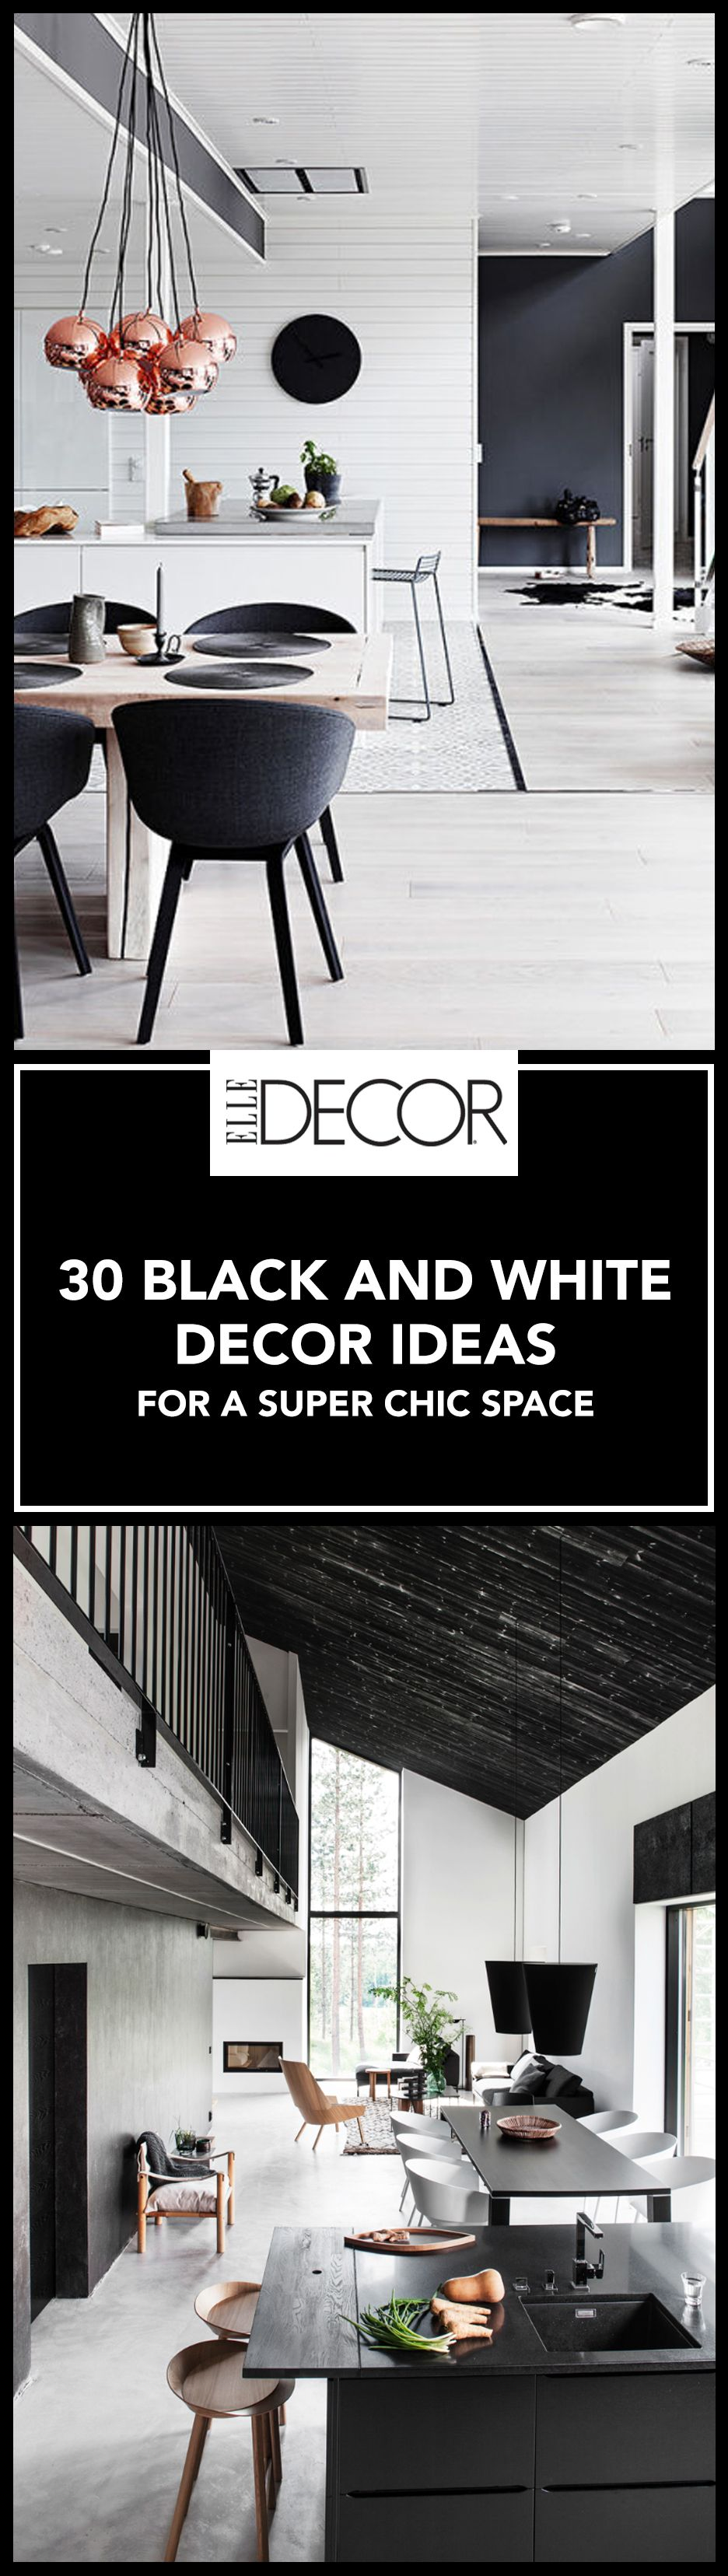 30 Best Black and White Decor Ideas - Black And White Design